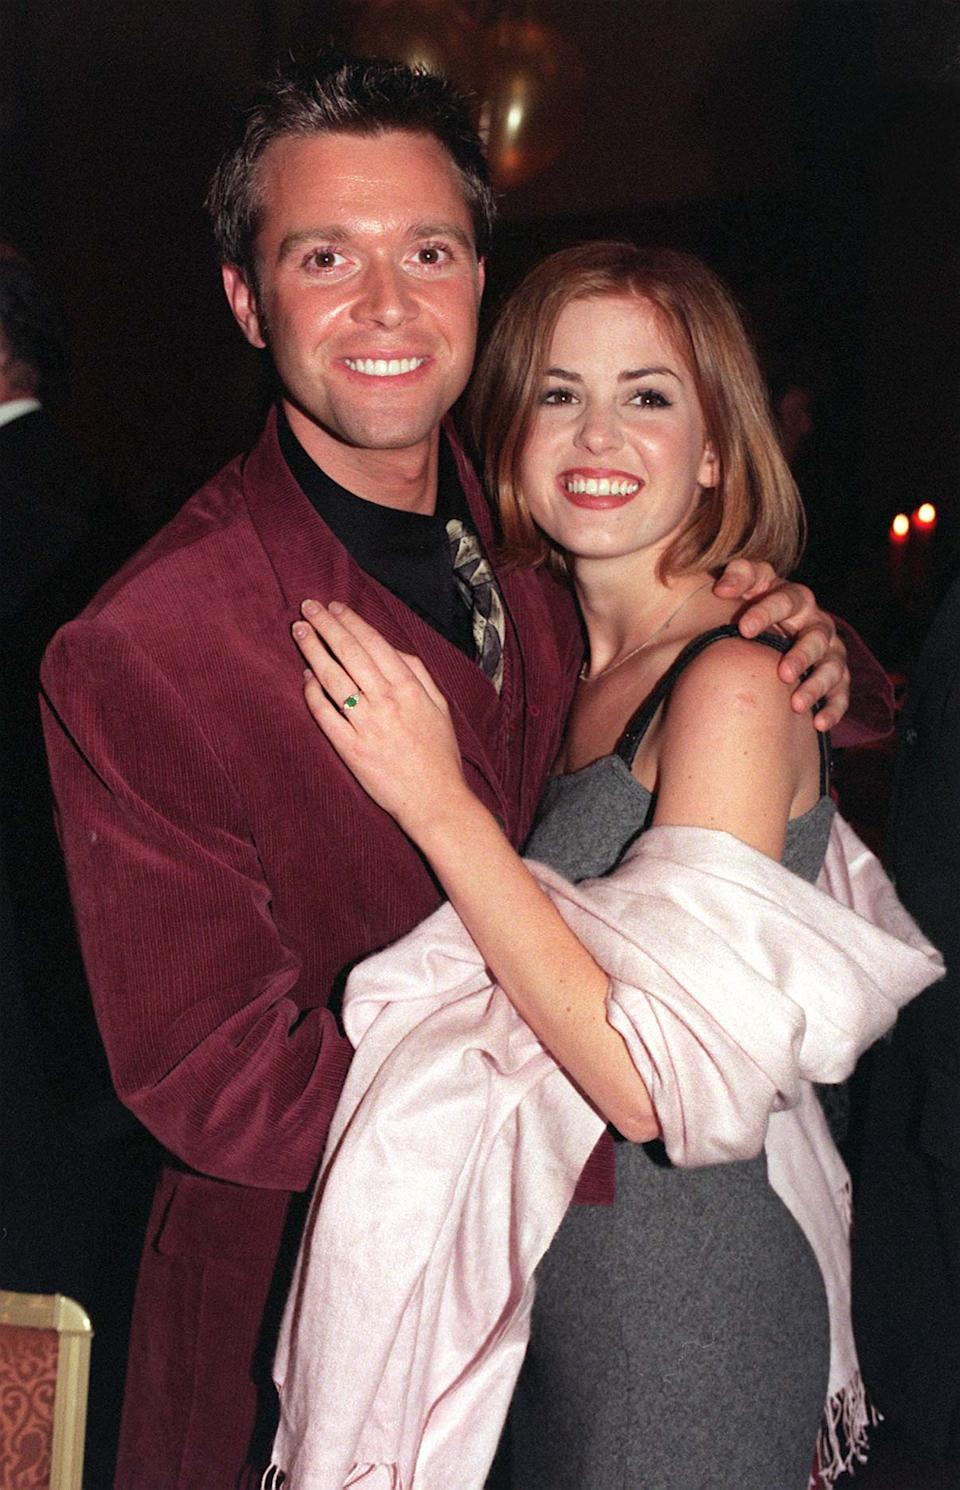 Darren Day was engaged to Isla Fisher, who went on to marry Sacha Baron Cohen. (Photo by Michael Crabtree - PA Images/PA Images via Getty Images)